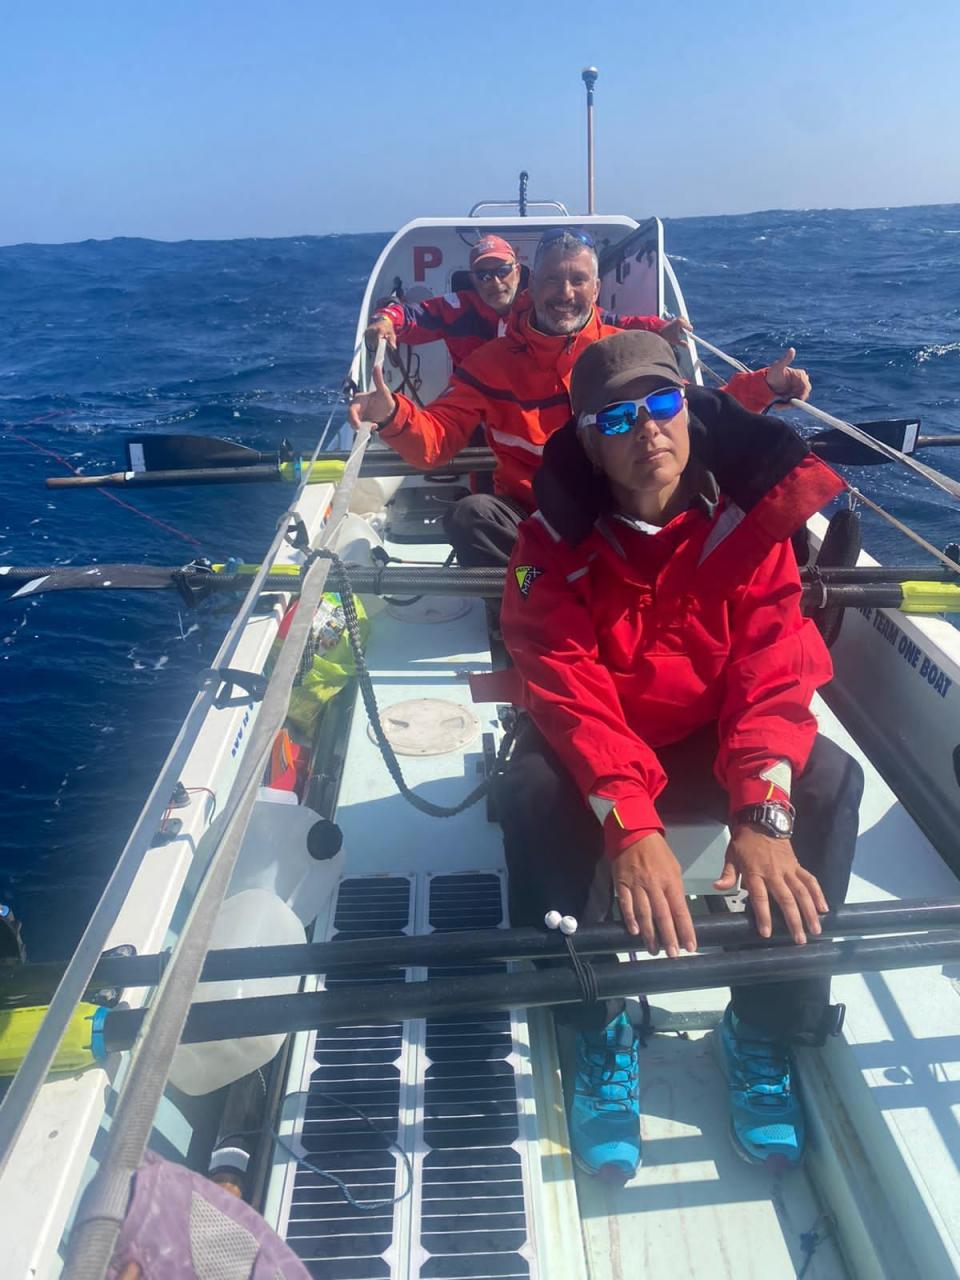 The crew have been at sea for a month.